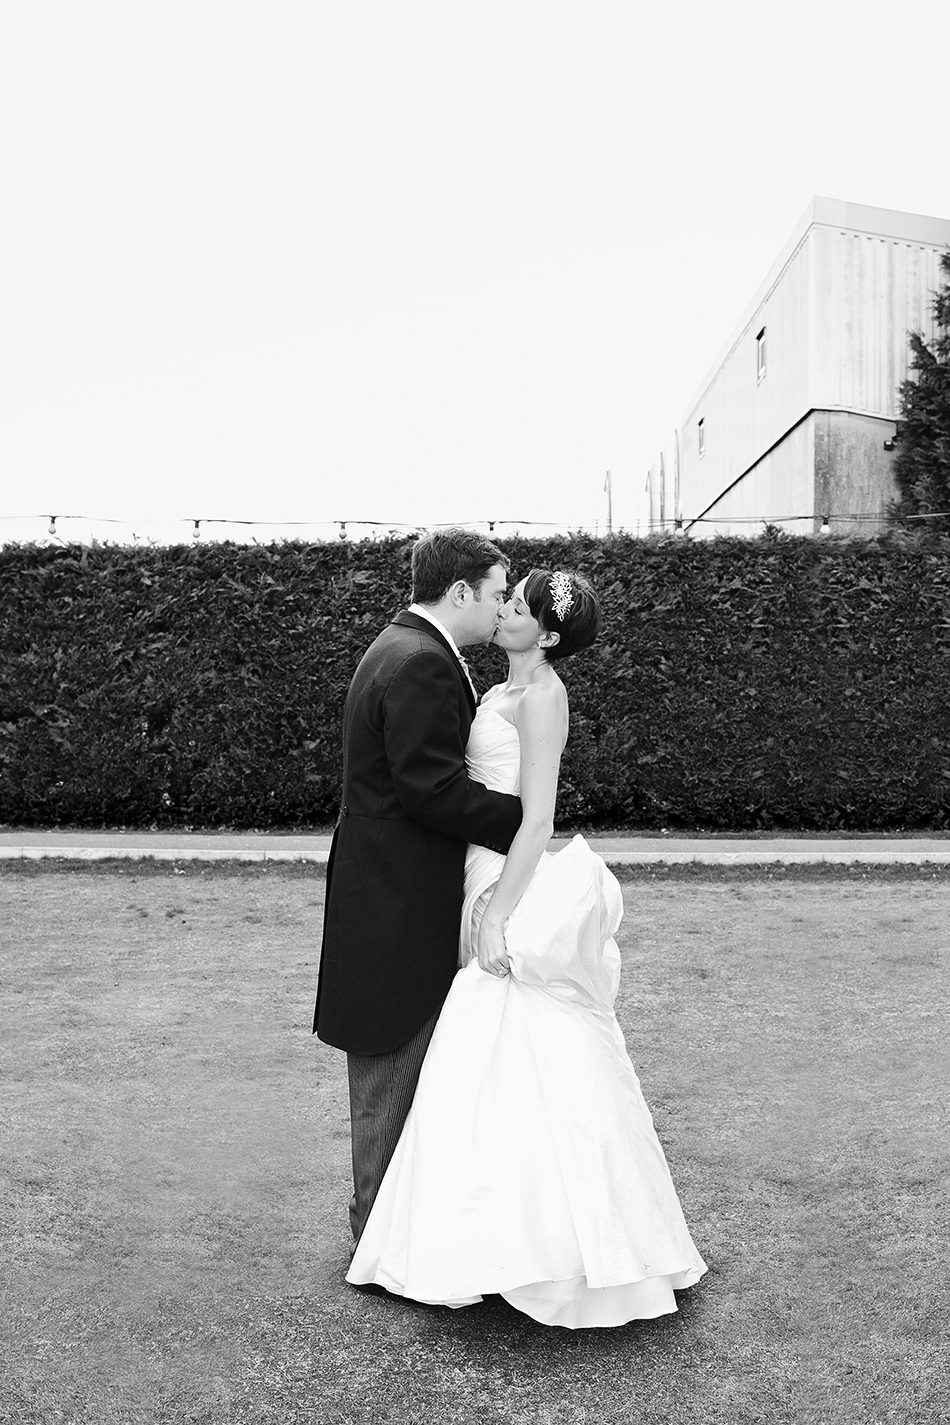 black and white wedding photography creative photography sunshine coast london